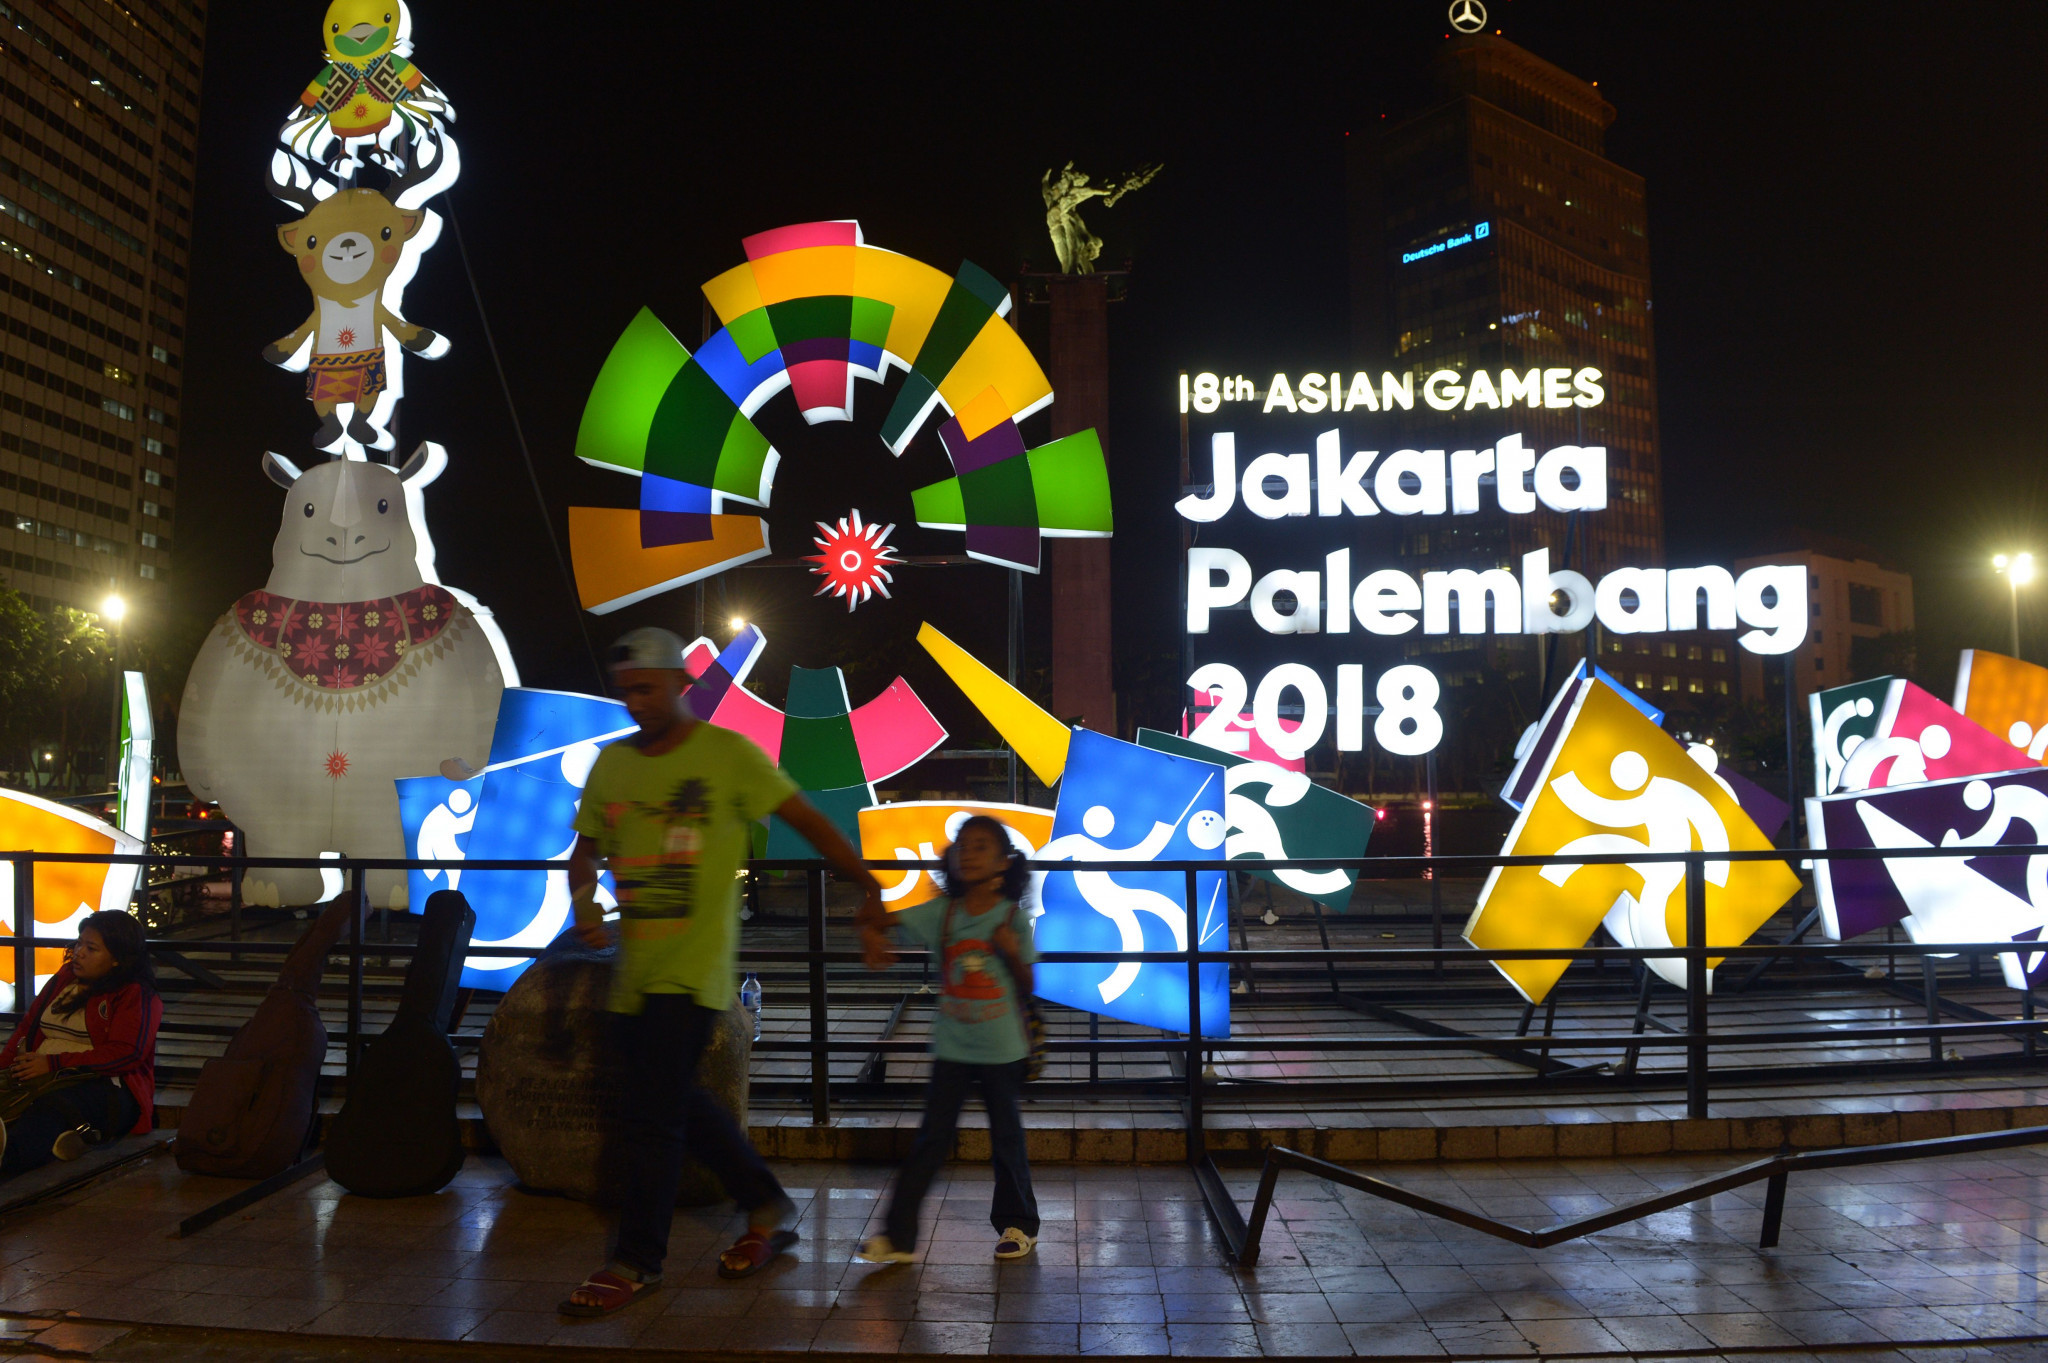 Jakarta Palembang 2018 organisers say Games will be delivered on time